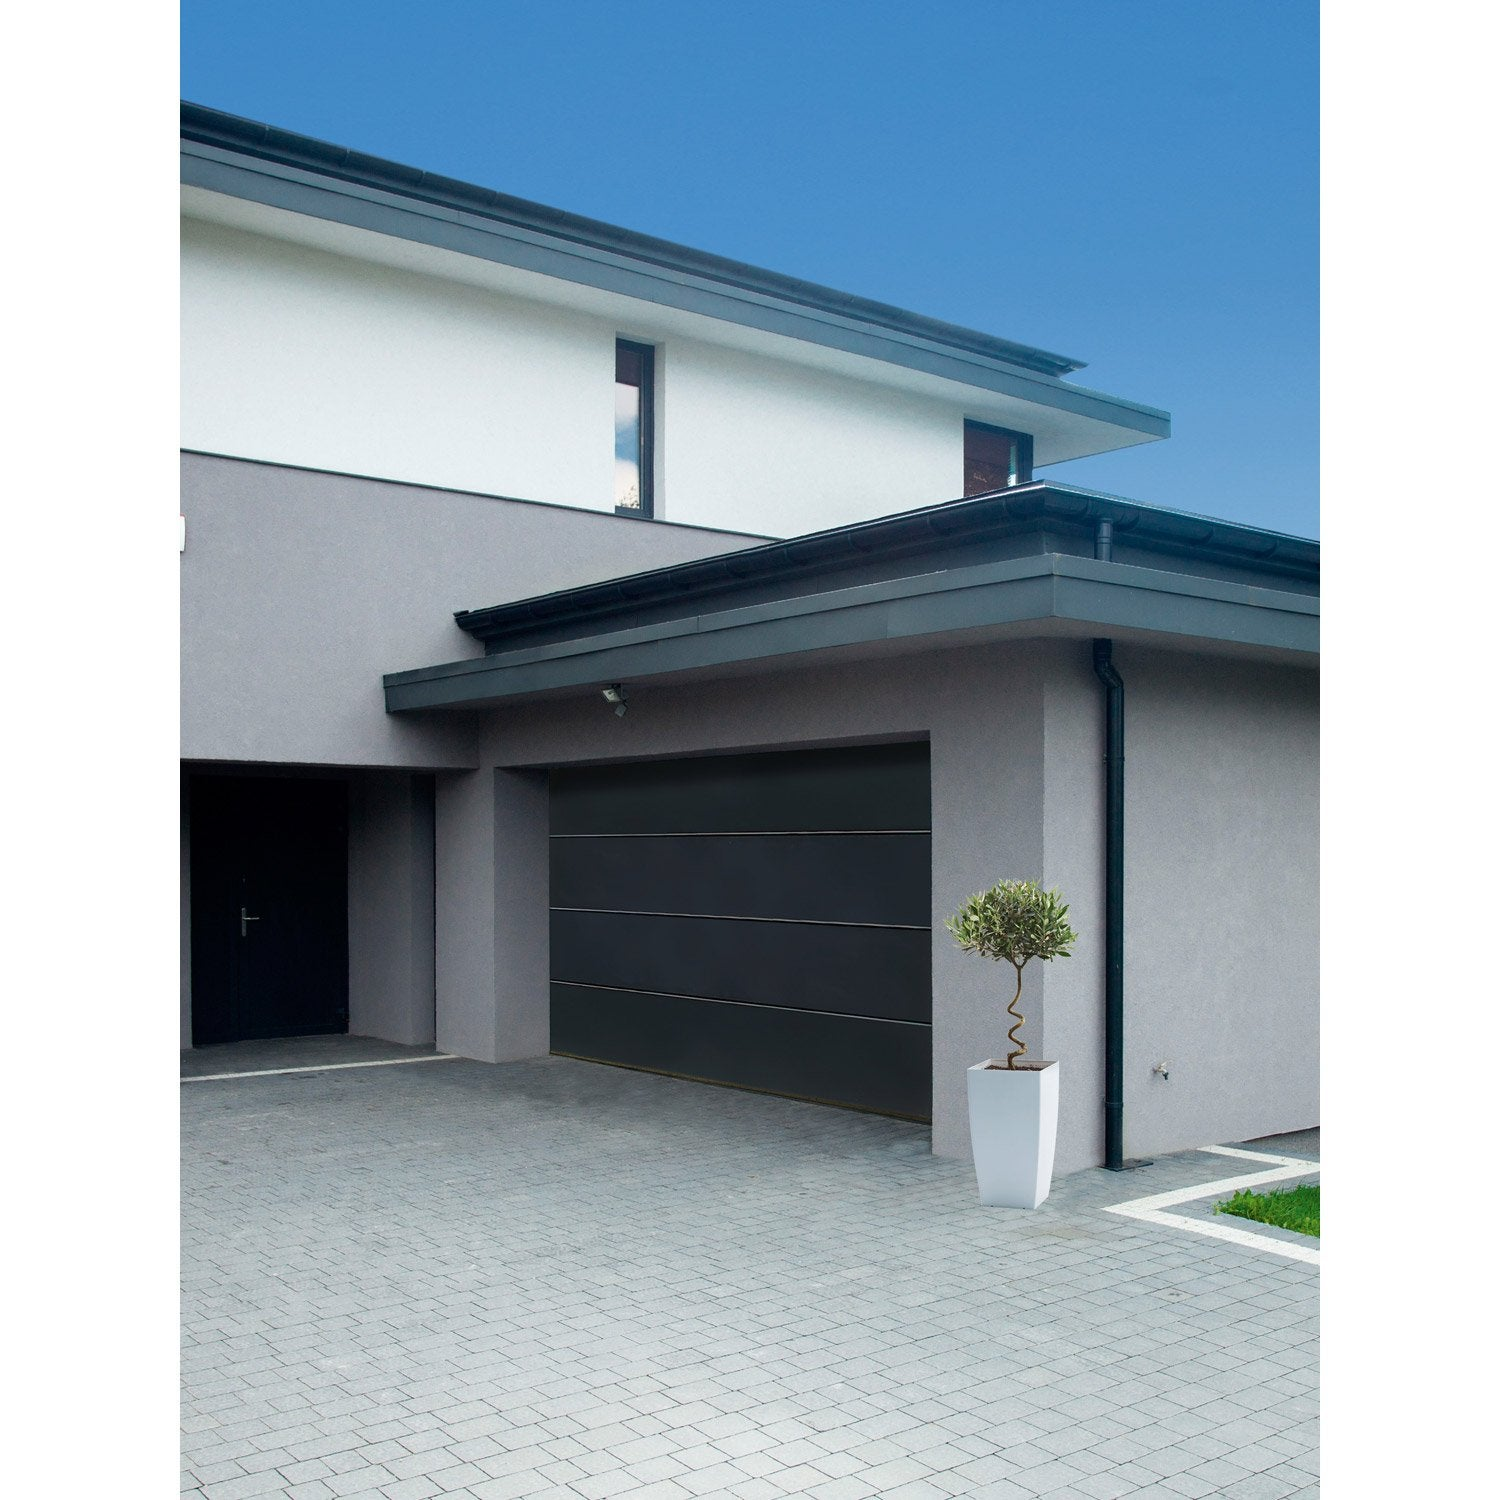 Porte de garage sectionnelle motoris e artens premium 200x240cm avec portillo - Leroy merlin porte garage sectionnelle ...